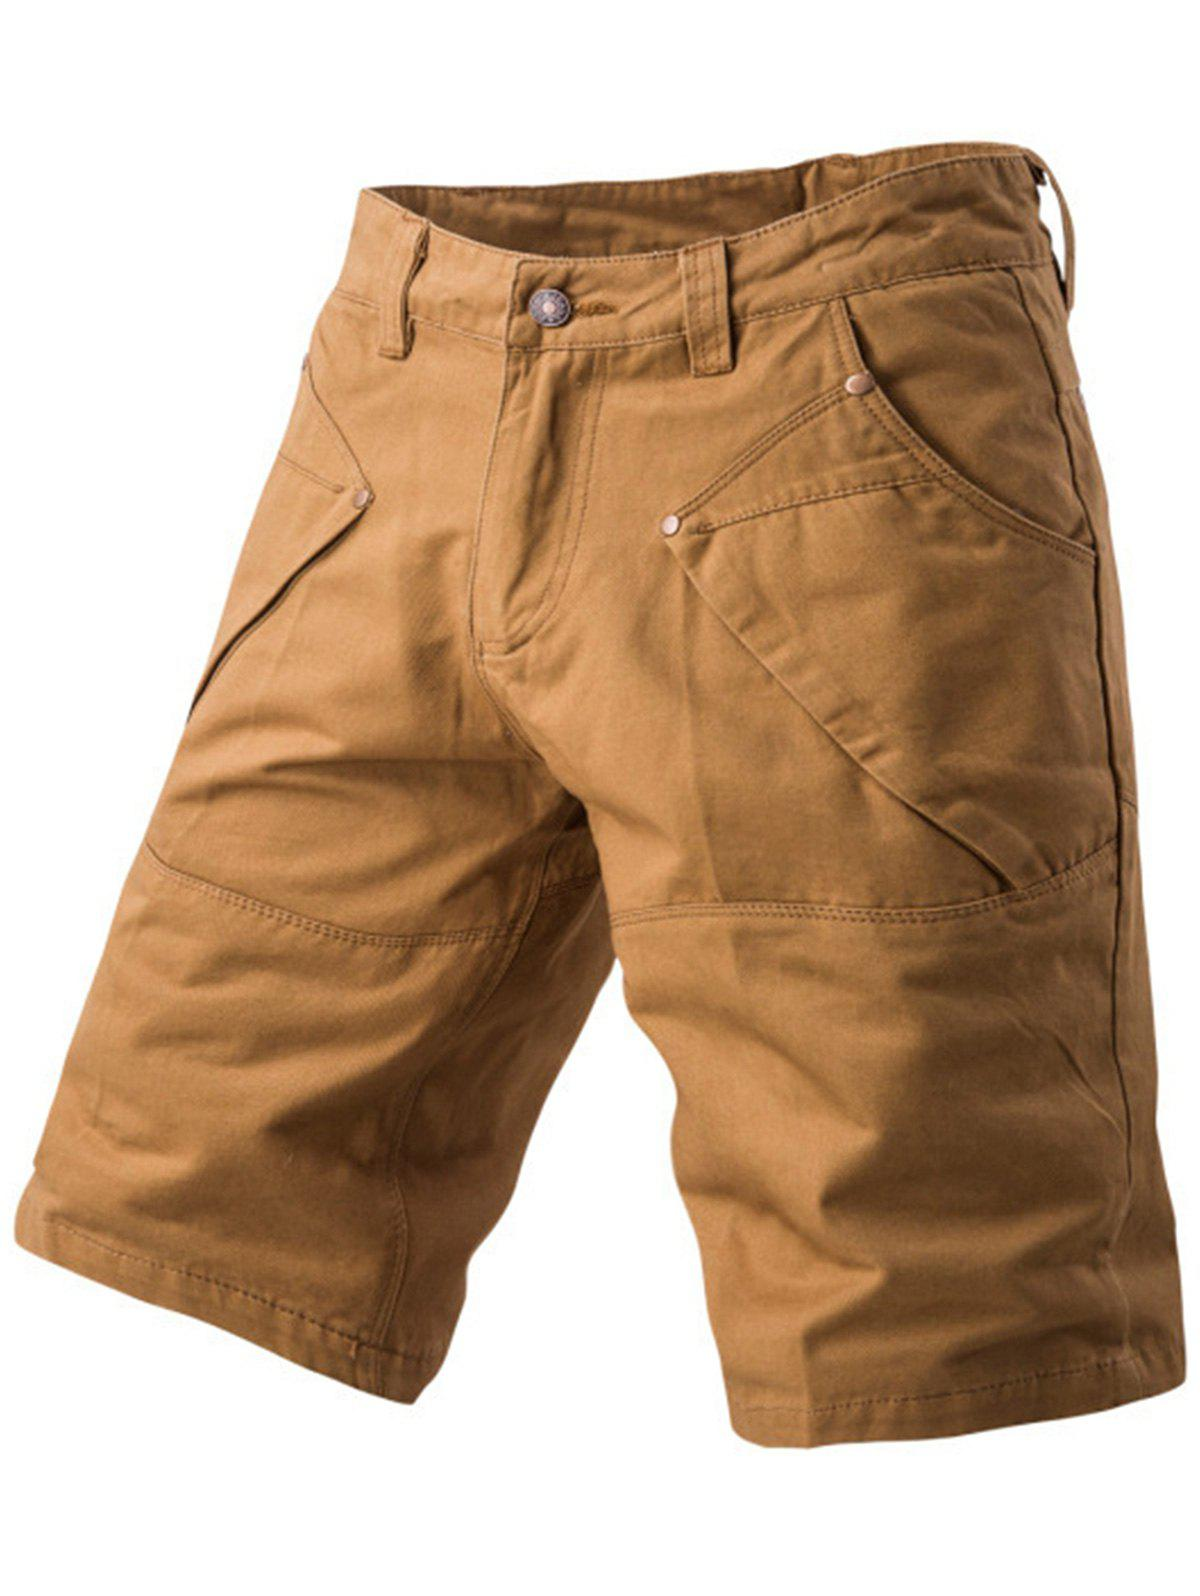 Panel Design Pockets Cargo Shorts - KHAKI 34